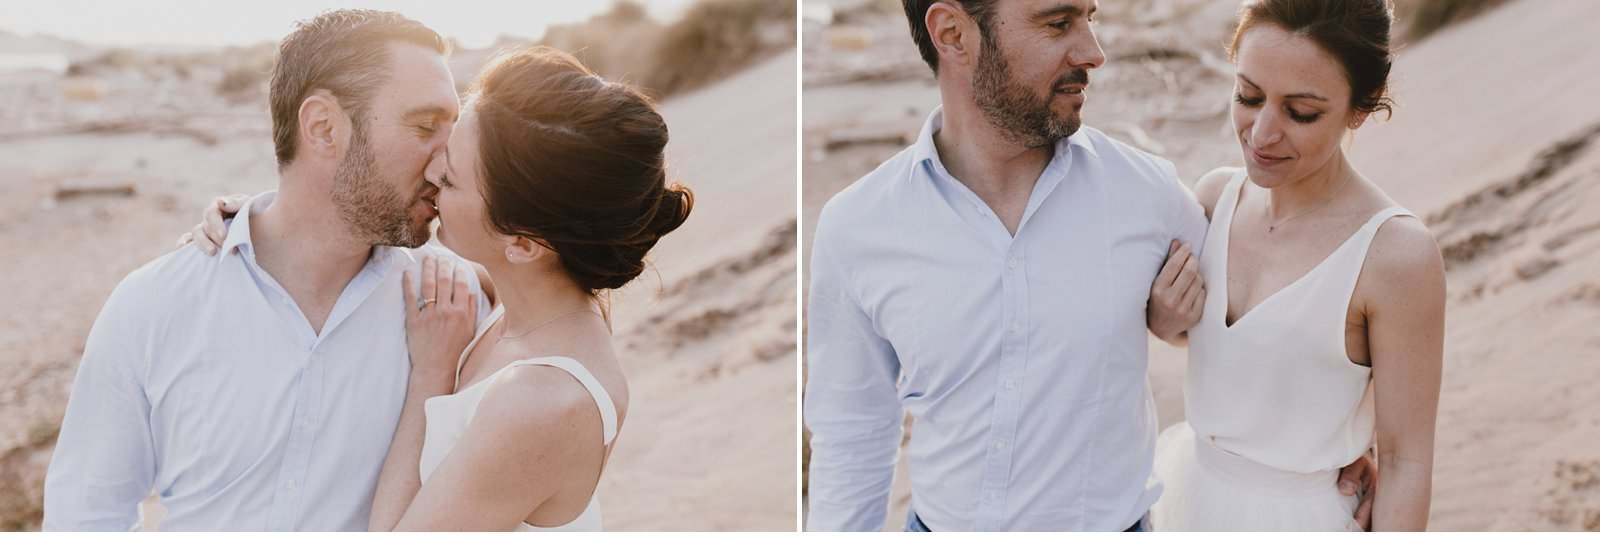 Sebastien Boudot Wedding Photographer South France Provence